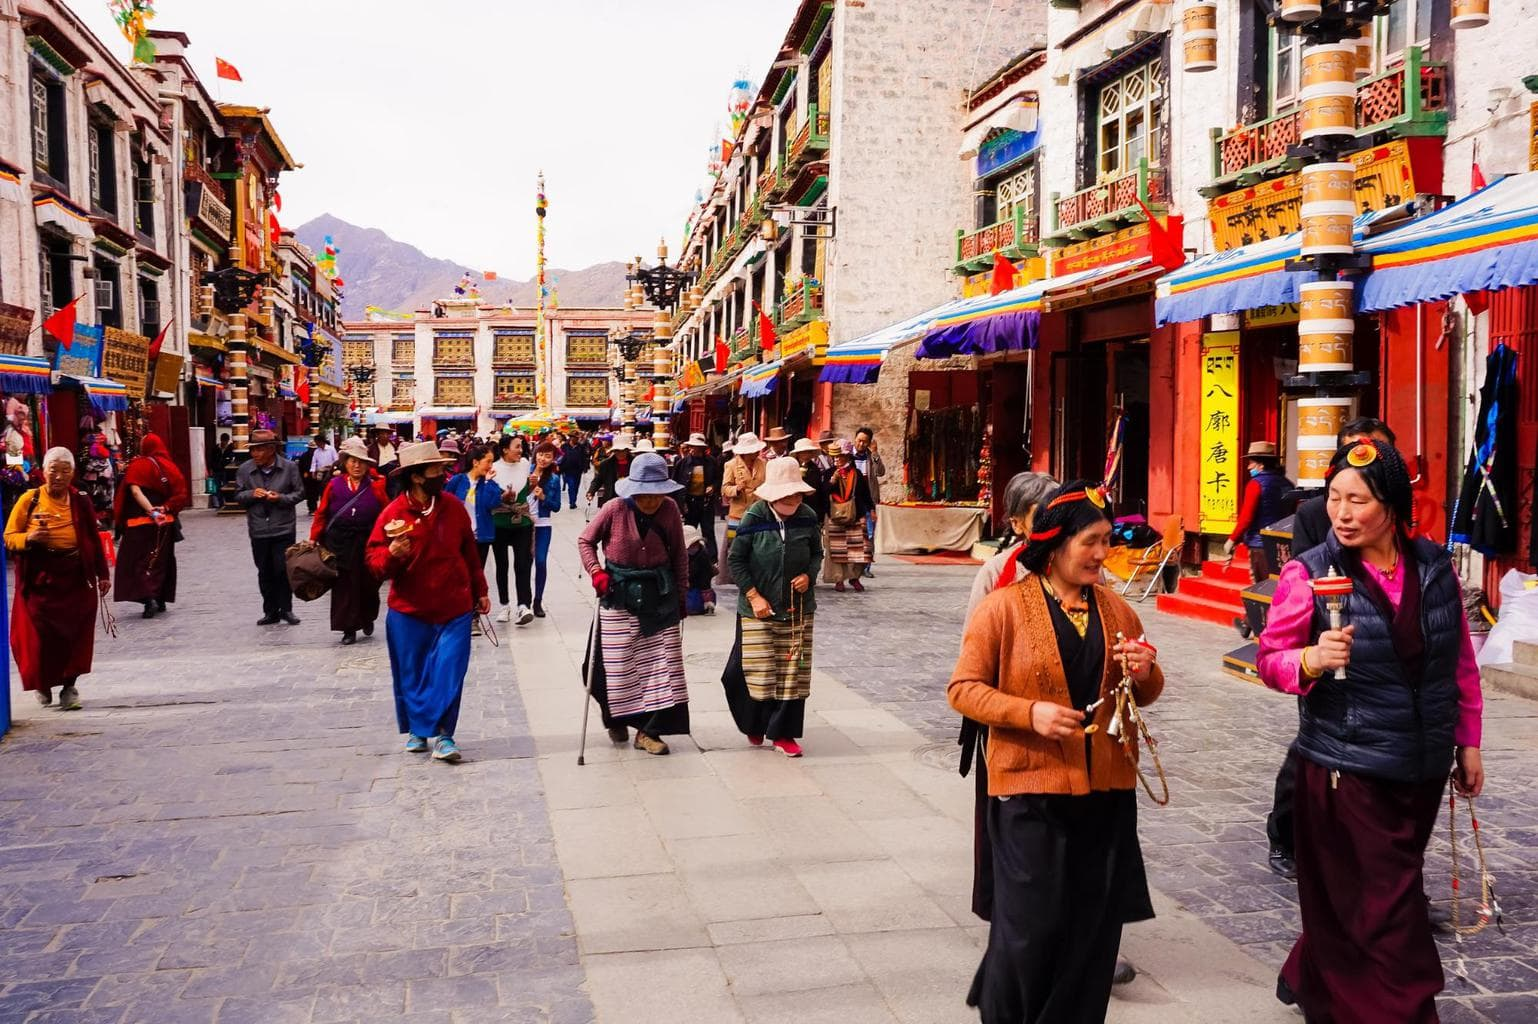 Local Tibetans on their daily kora in Lhasa